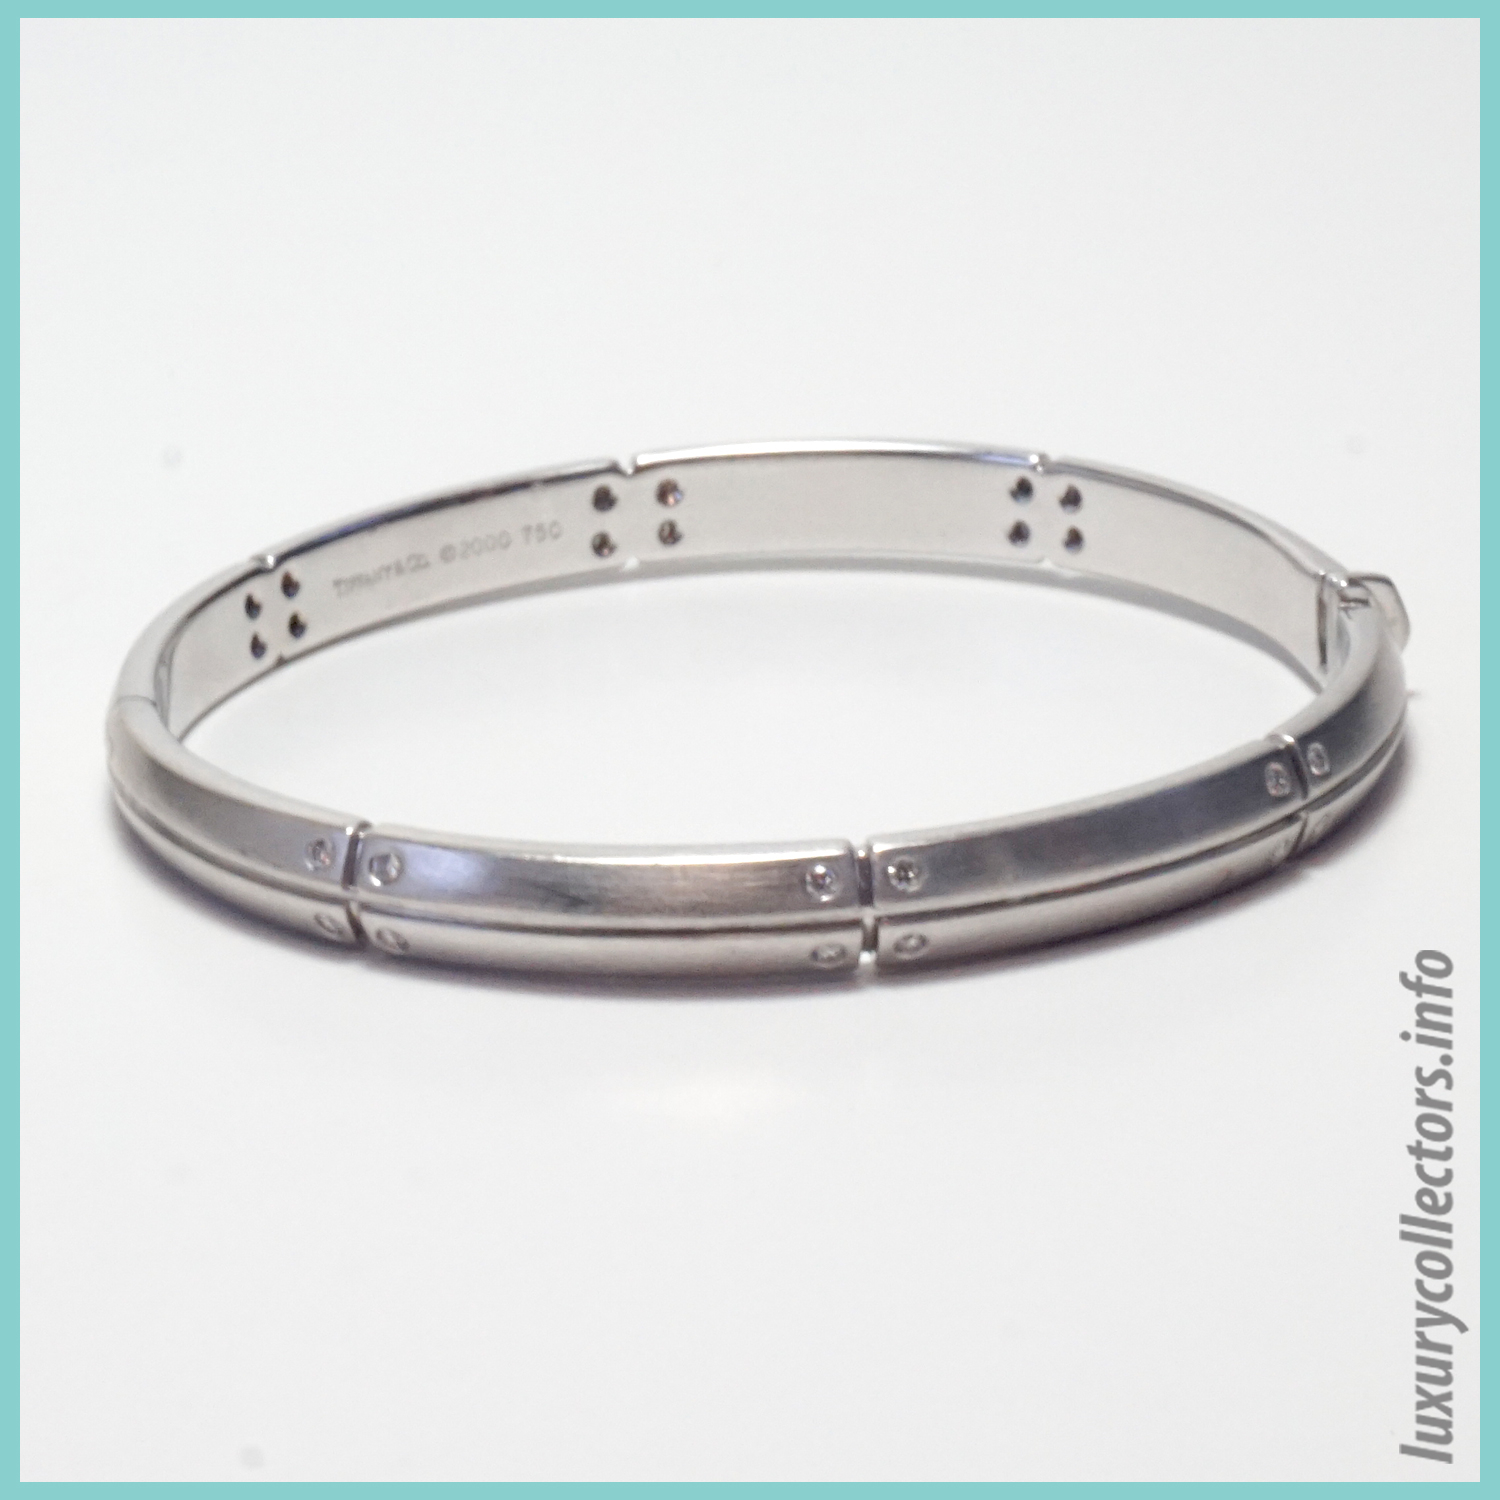 Tiffany & Co. Streamerica 18K White Gold Collection Diamonds 2000 2002 Bangle Bracelet Stamped Closed